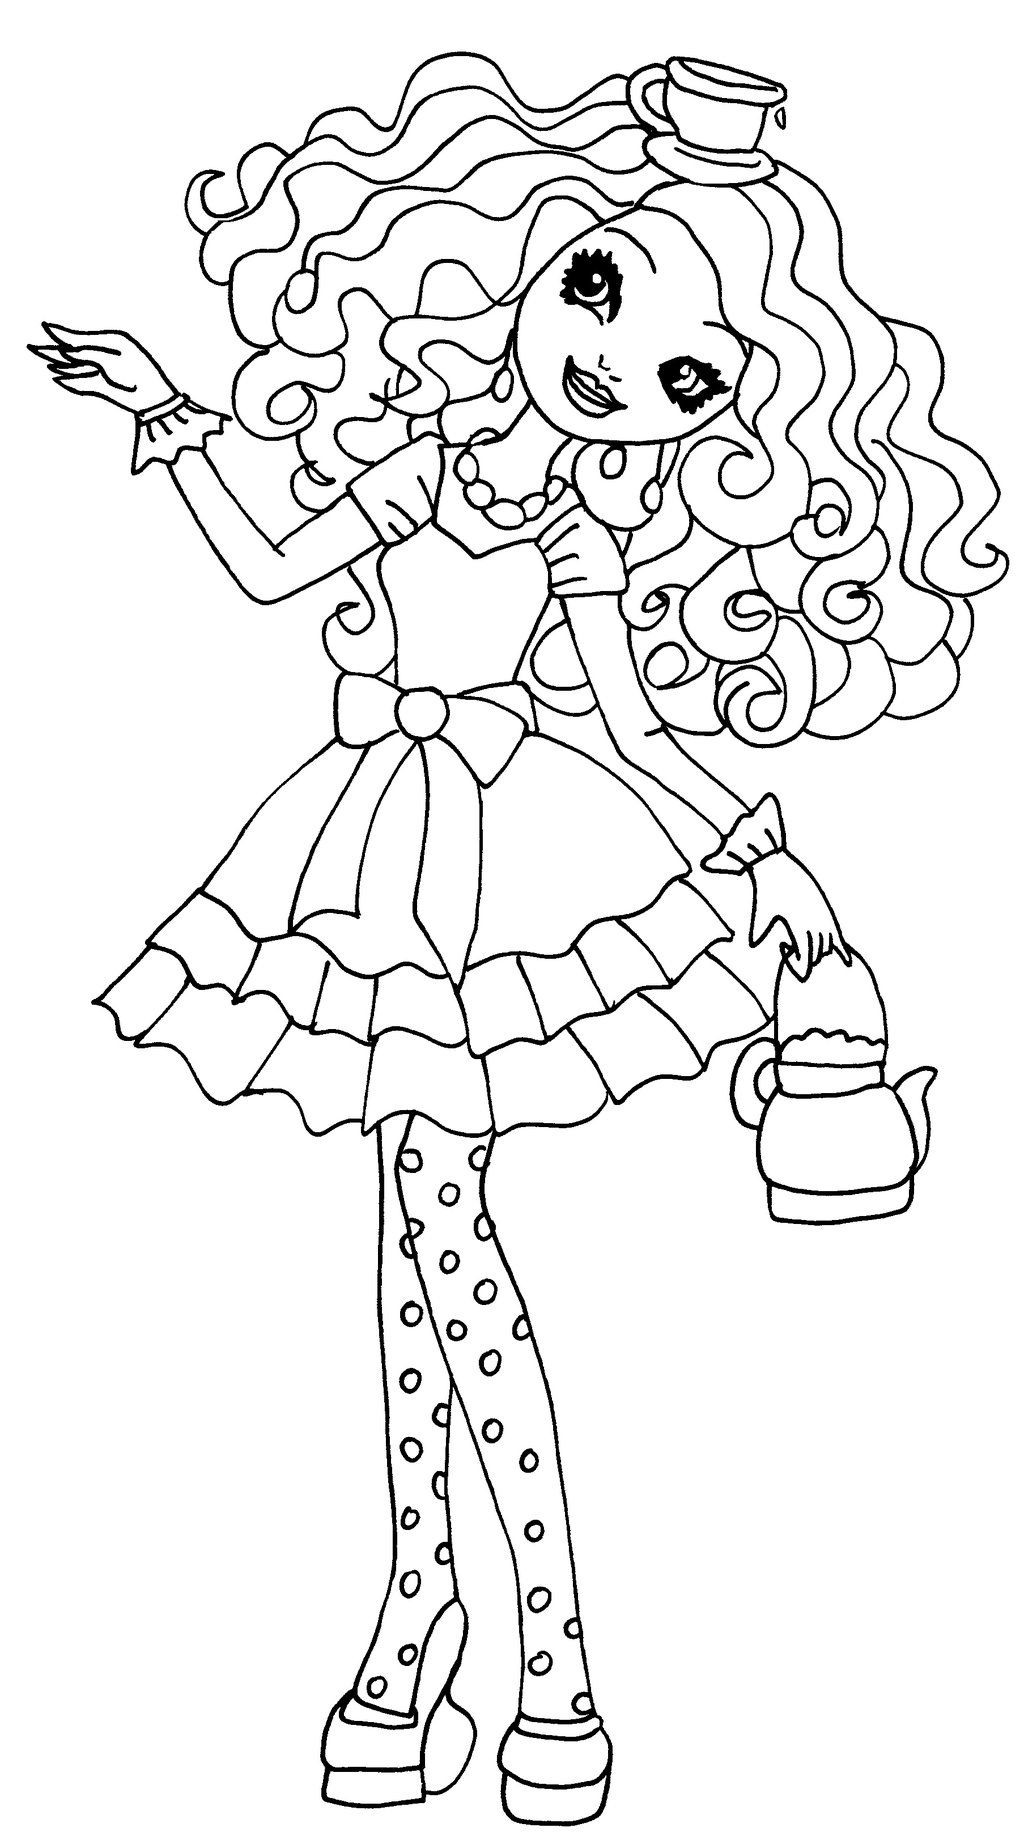 Madeline hatter coloring page my gk wants for bday theme for Madeline coloring pages printable